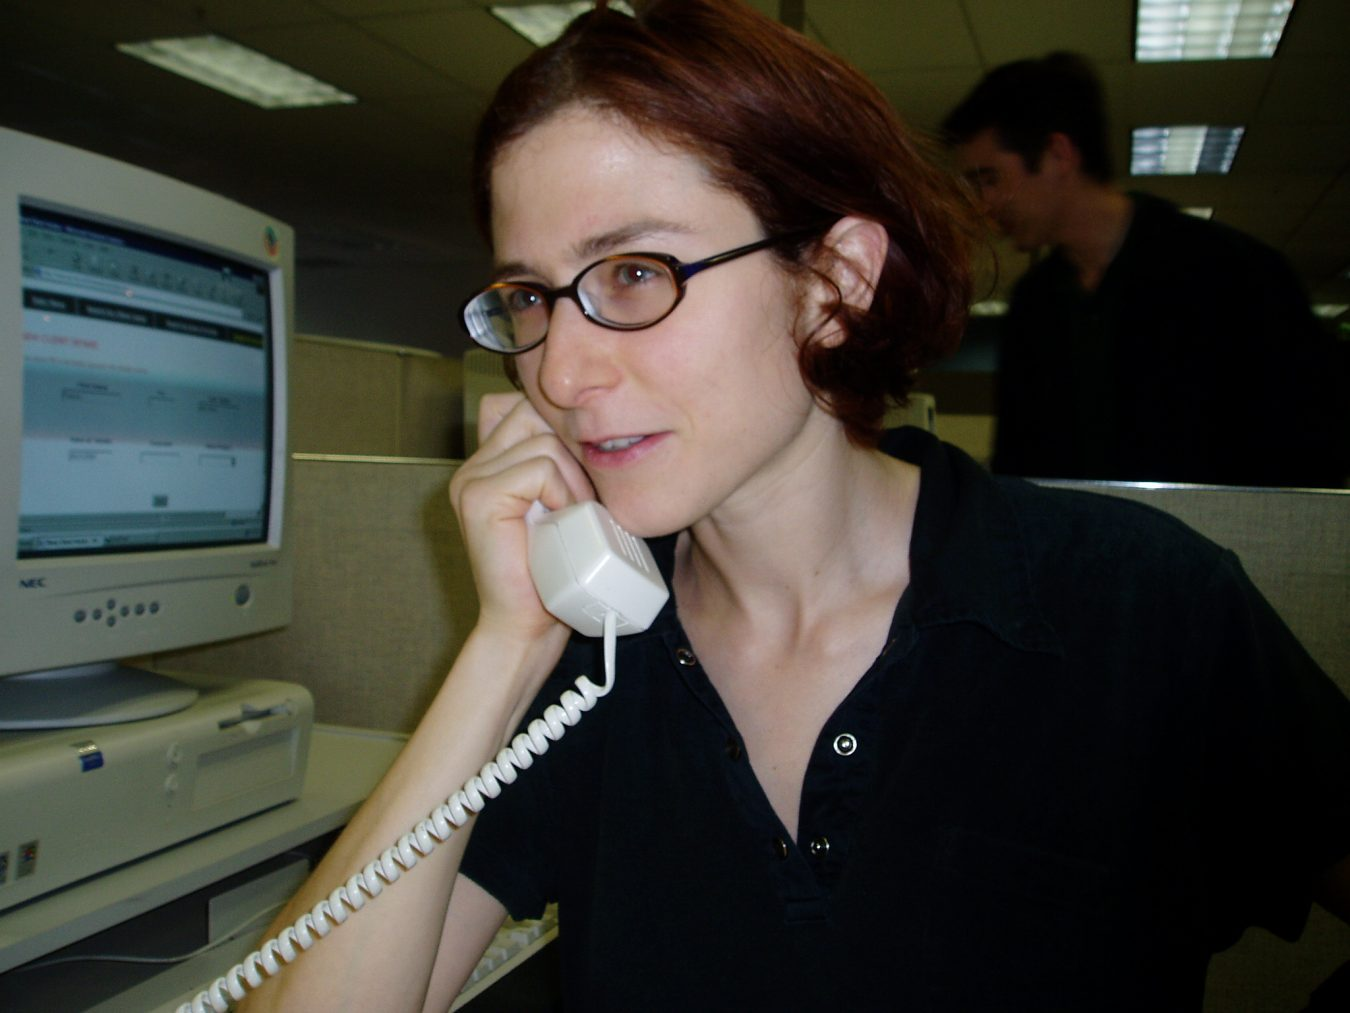 clinic or helpline operator